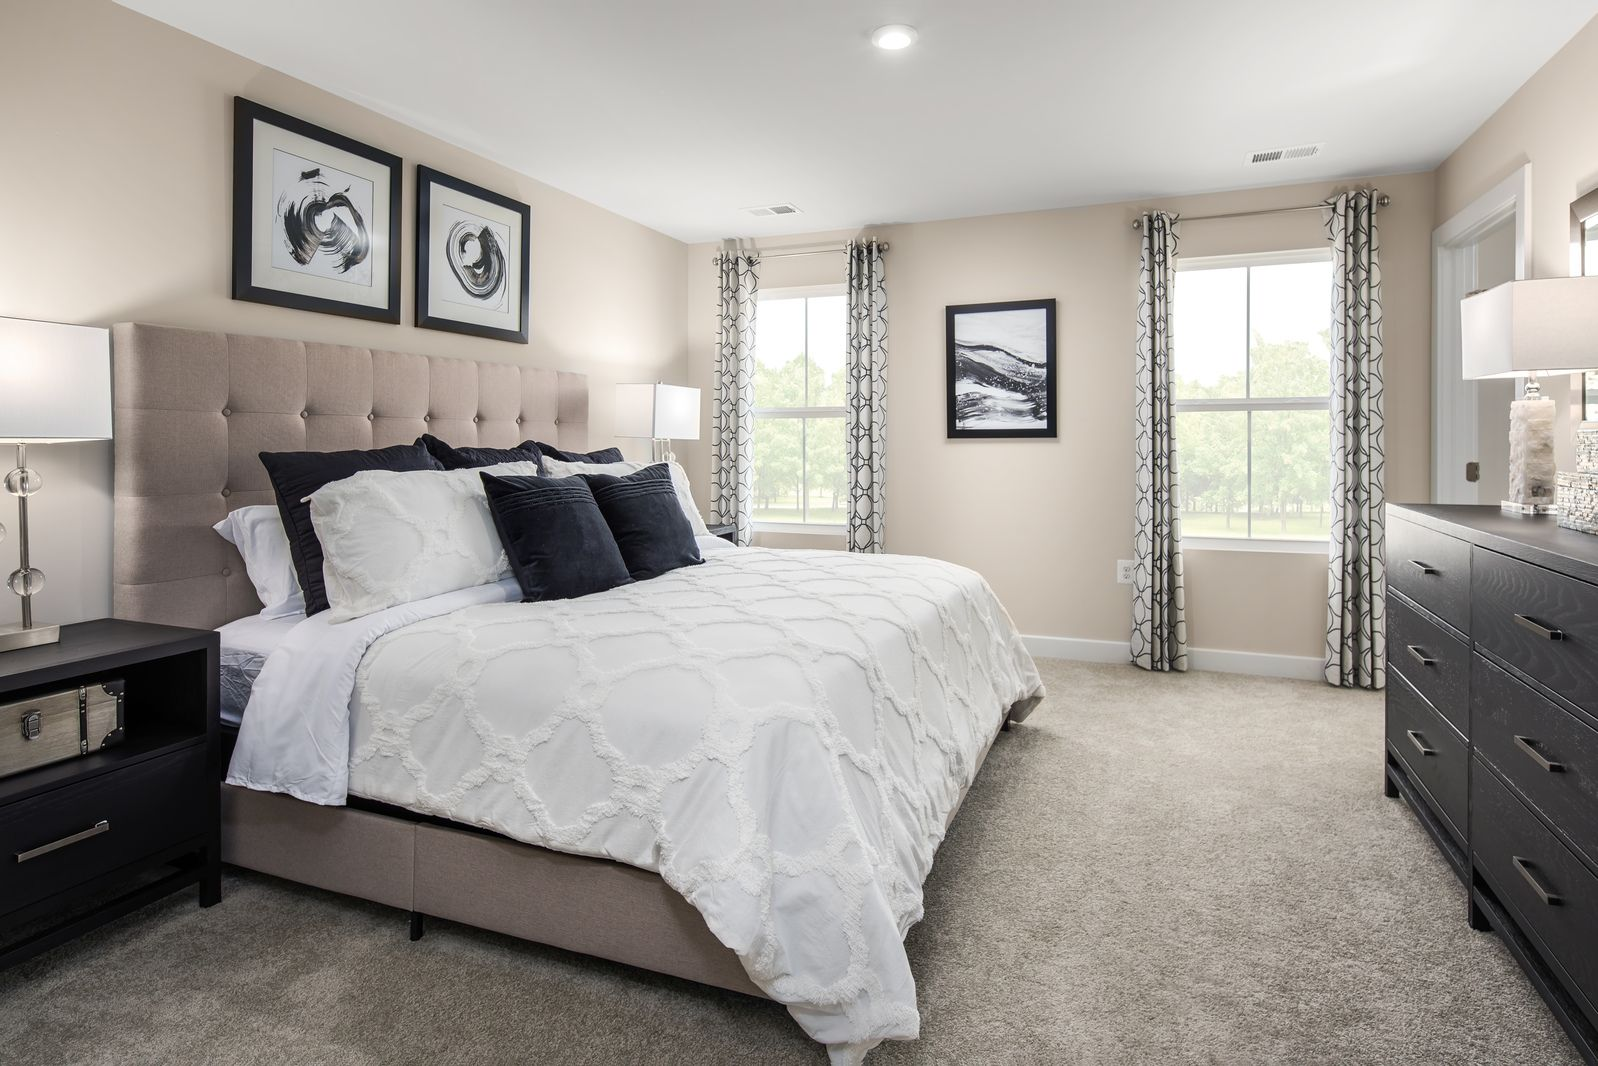 Bedroom featured in the Cayman Basement By Ryan Homes in Washington, WV